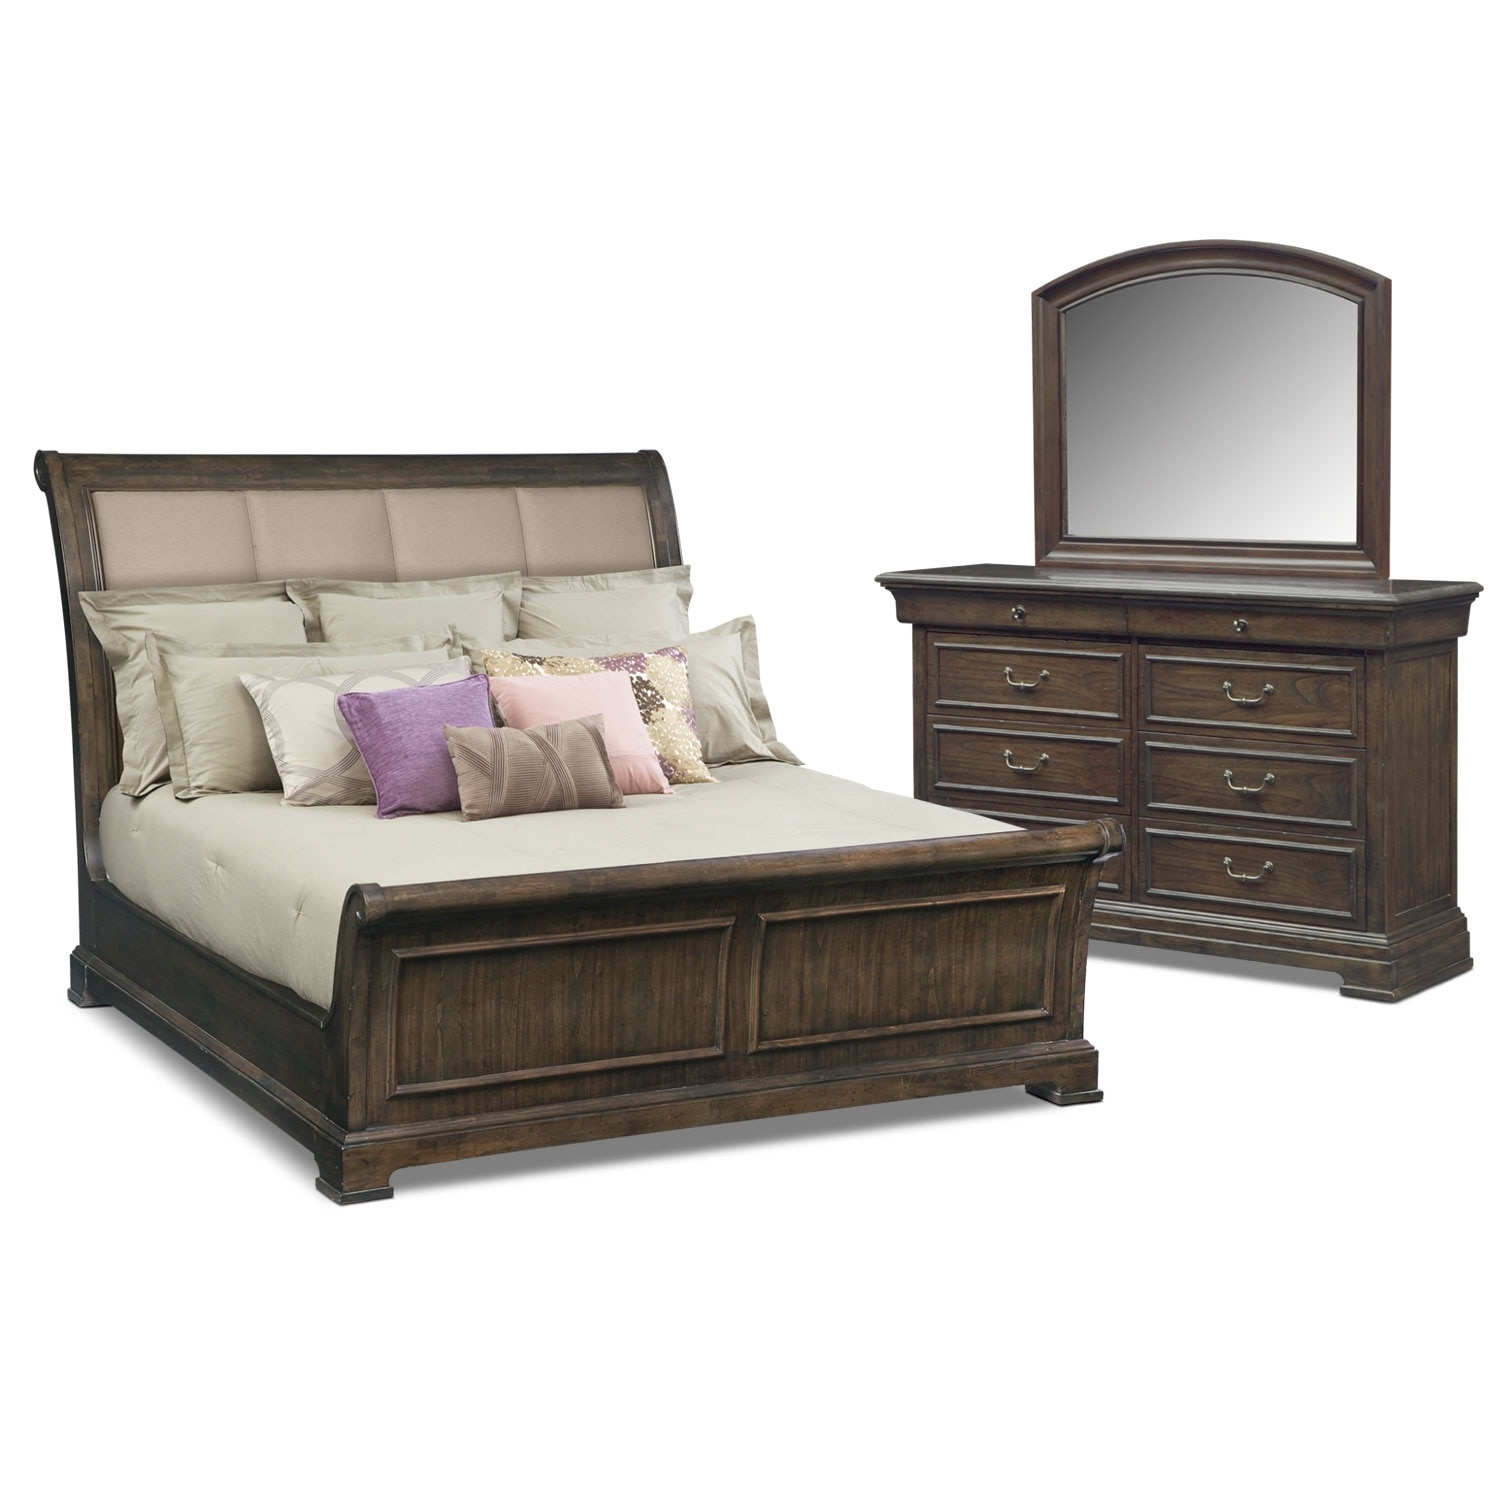 Collinwood 5 Pc. King Bedroom Package